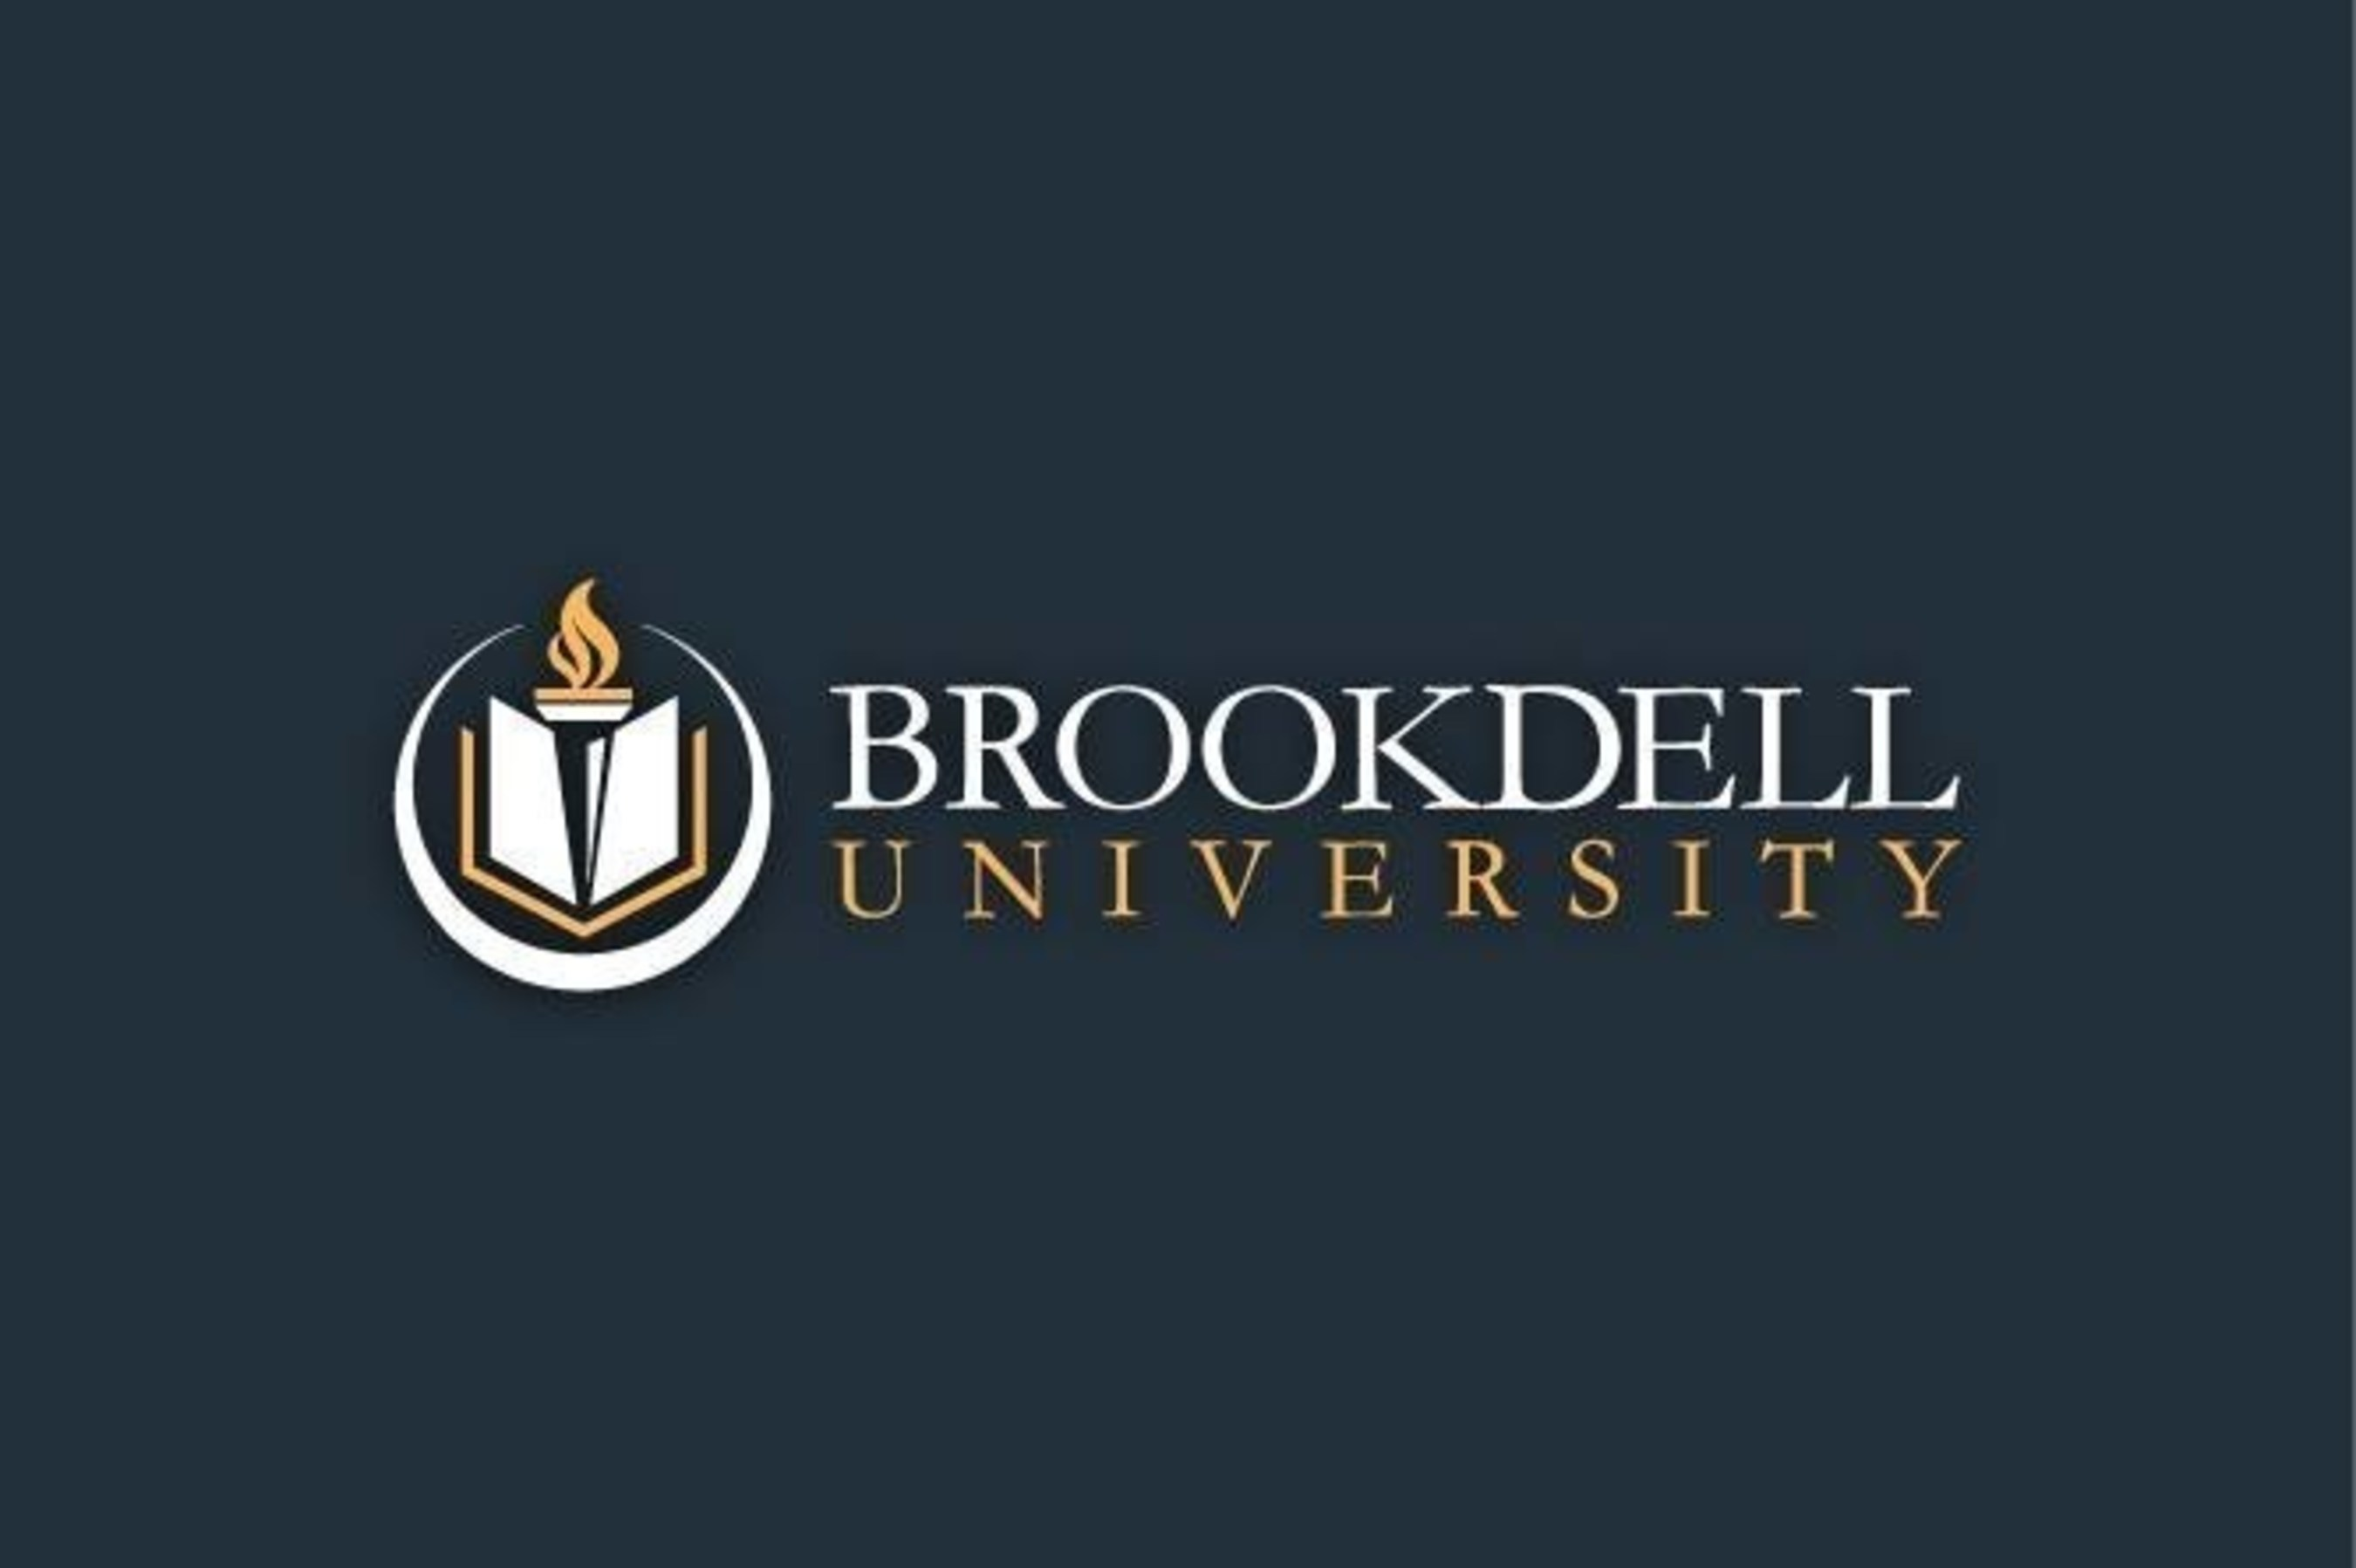 Brookdell University Making Waves Due to Its Unmatched Student Services